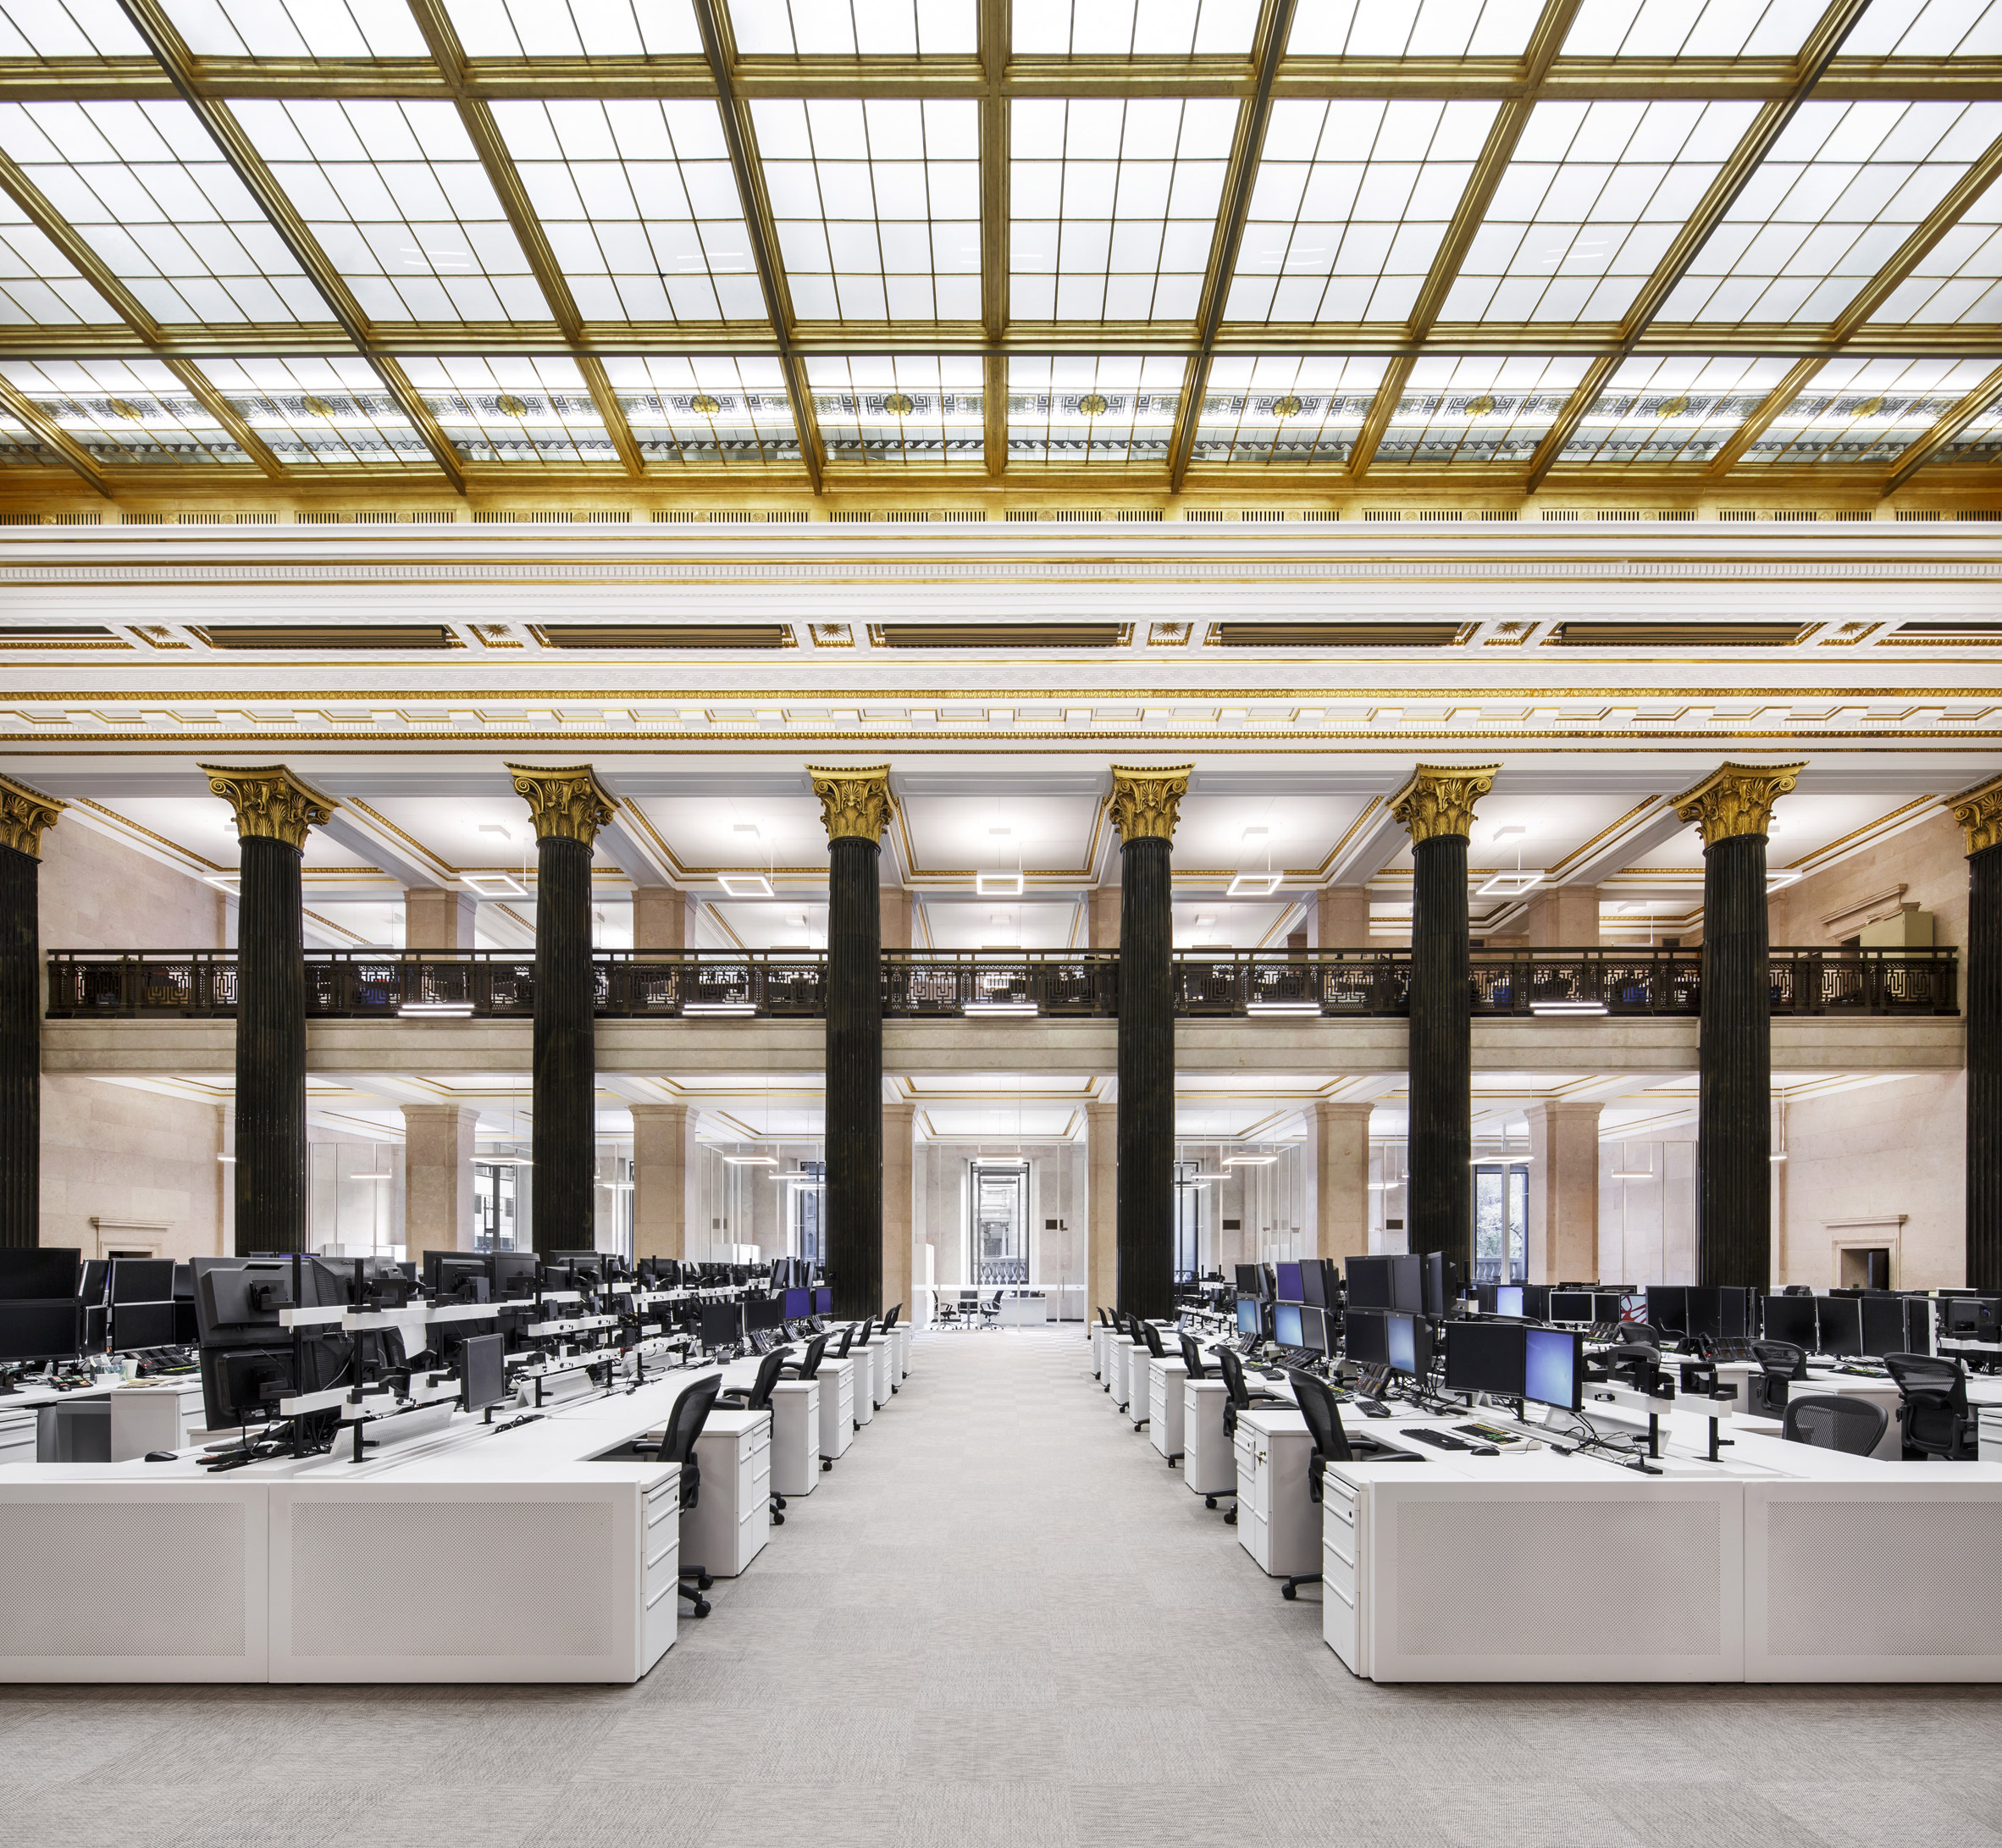 Architecture 49 refurbishes historic banking floor in central Montreal